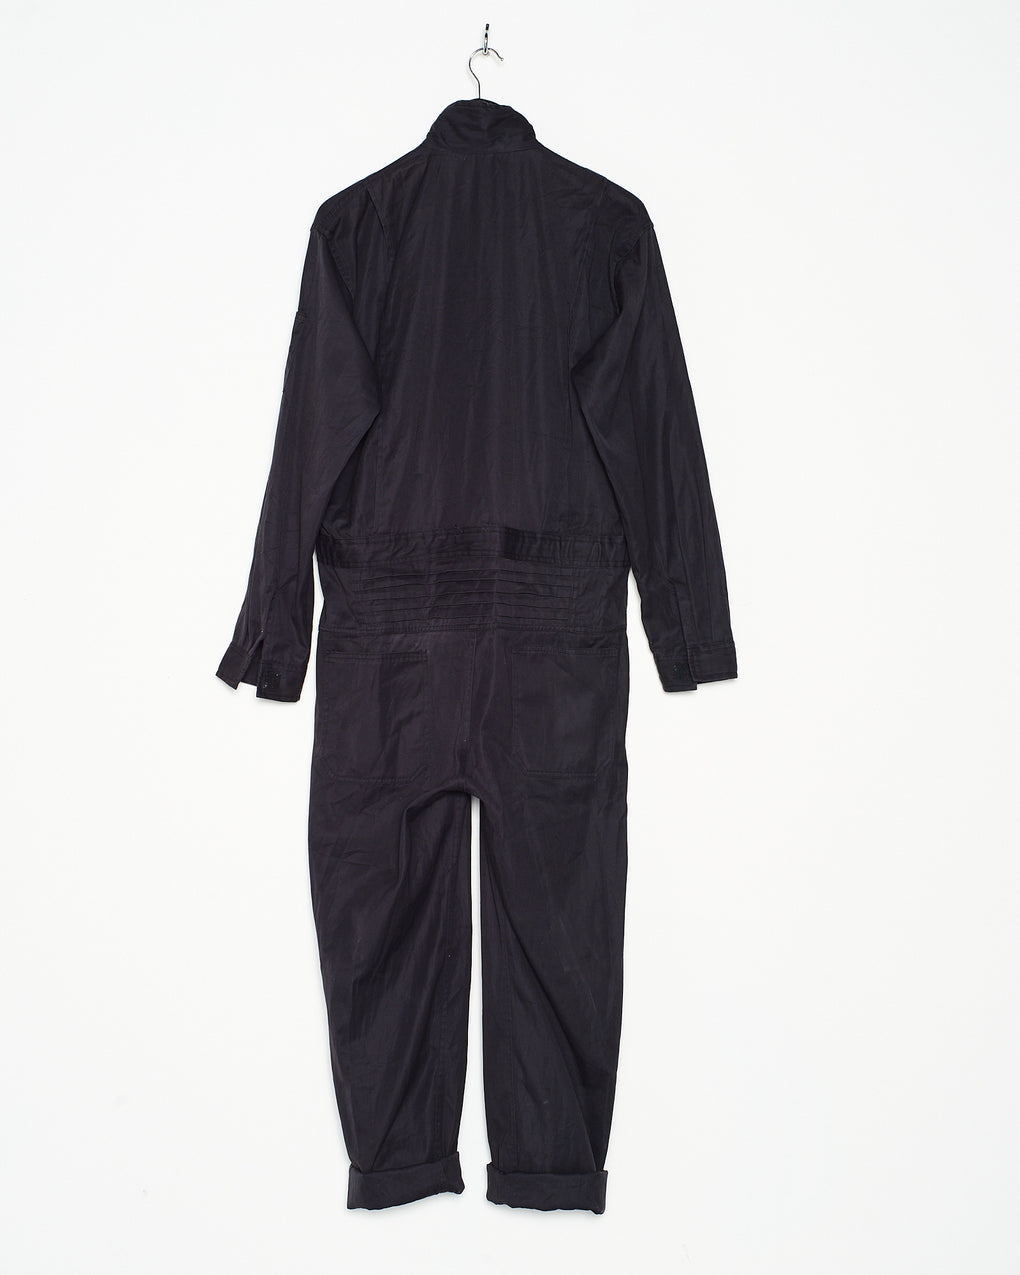 Black Mechanics Jumpsuit (L)